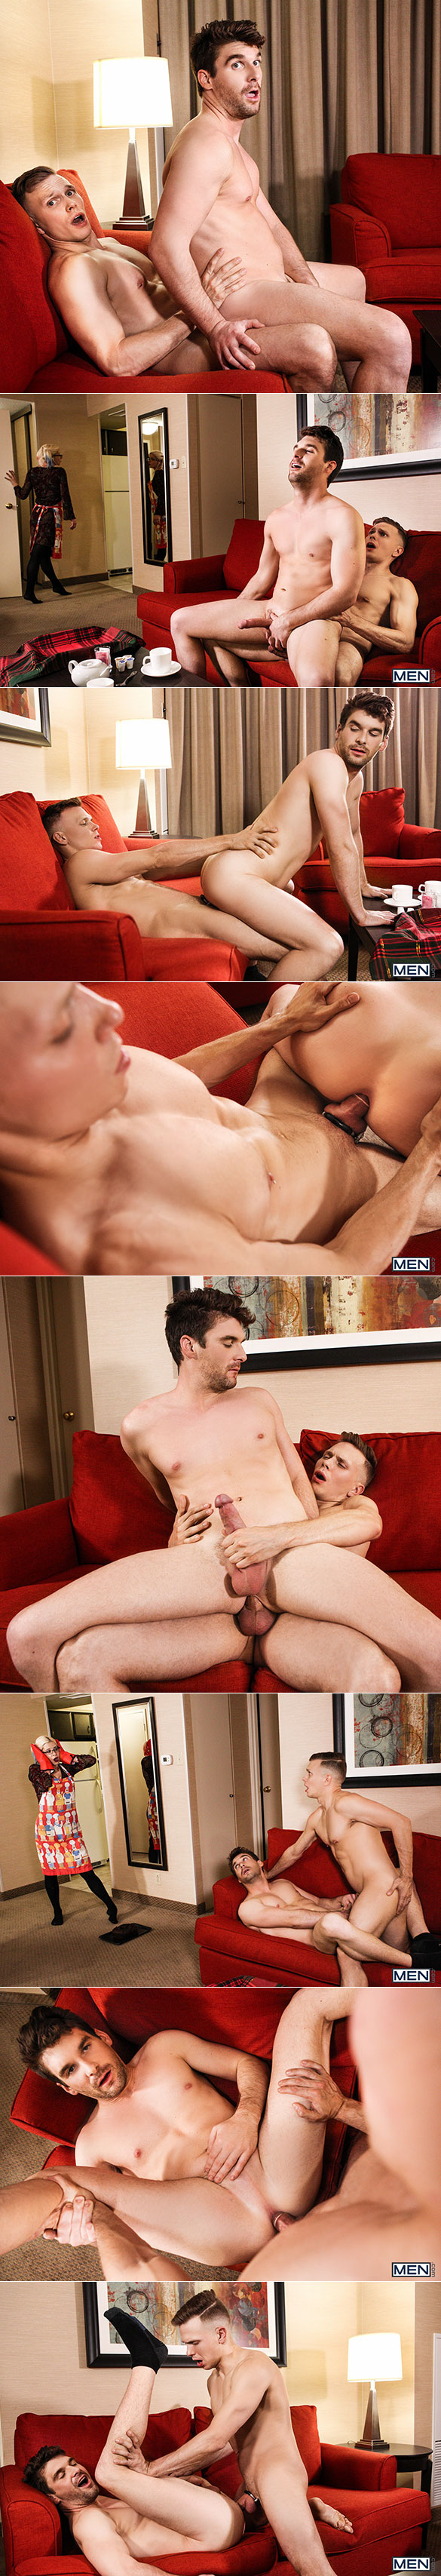 """Men.com: Ethan Chase fucks Dustin Holloway in """"Welcome to the Building"""""""